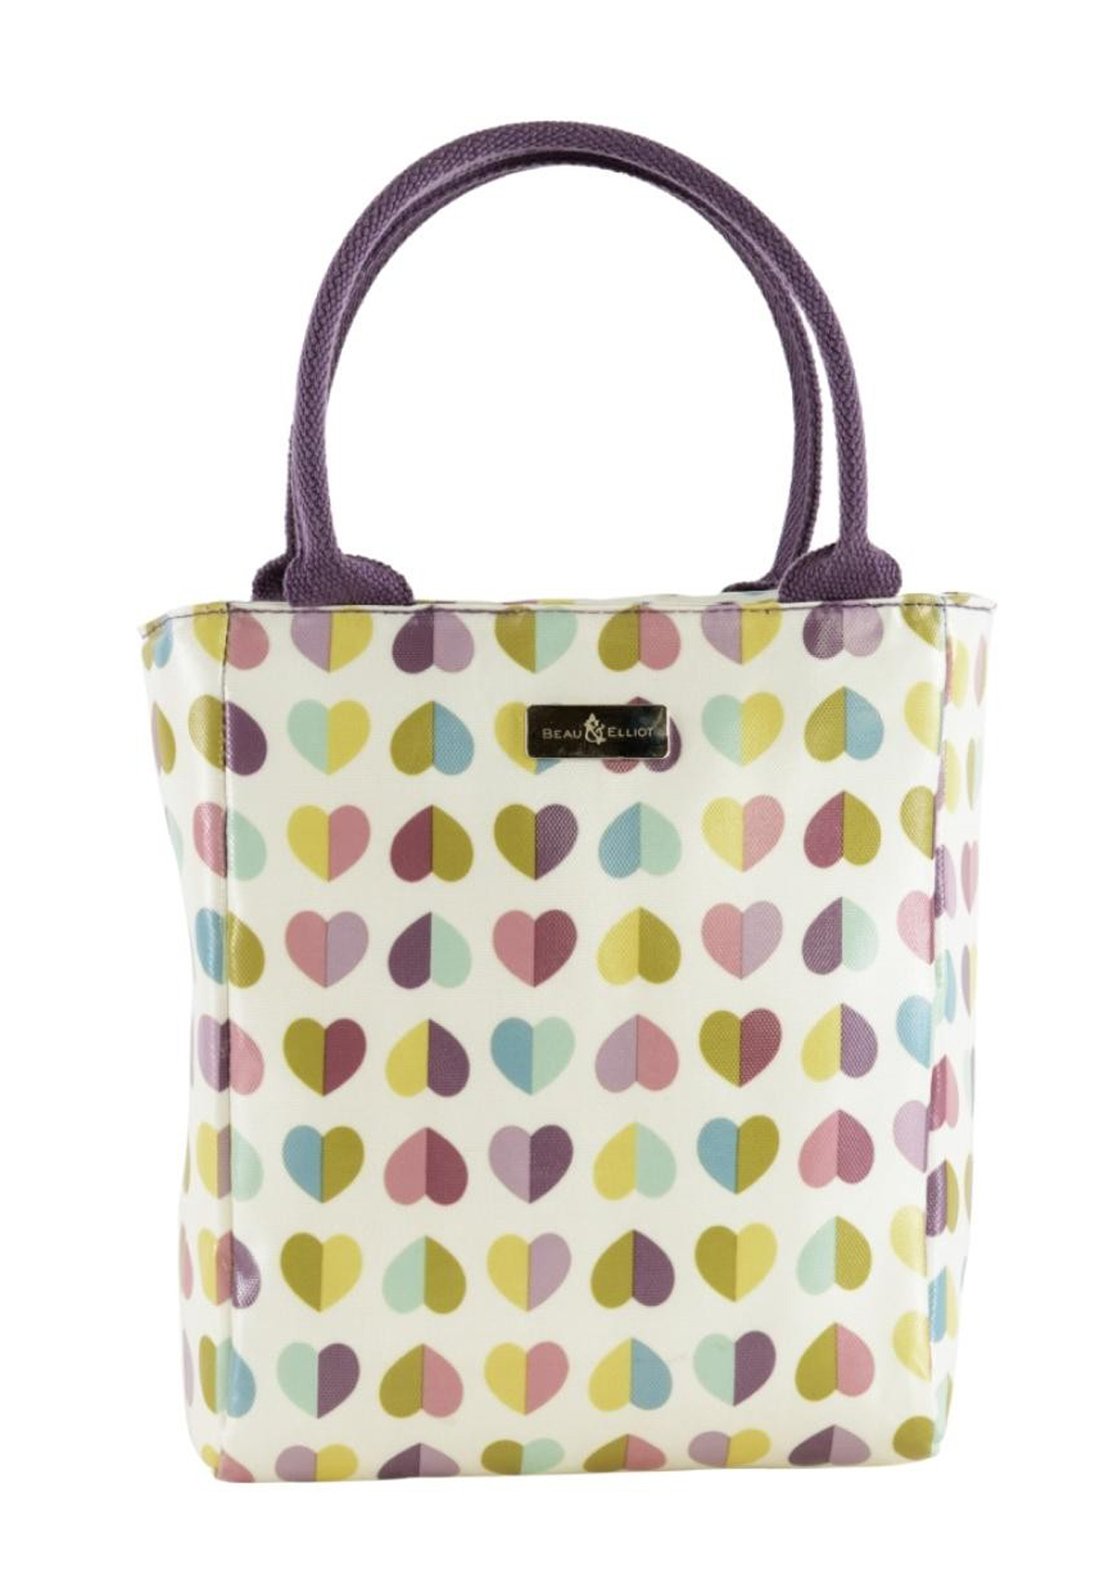 Beau & Elliot Vintage Confetti Heart Print Insulated Lunch Tote, Green Multi